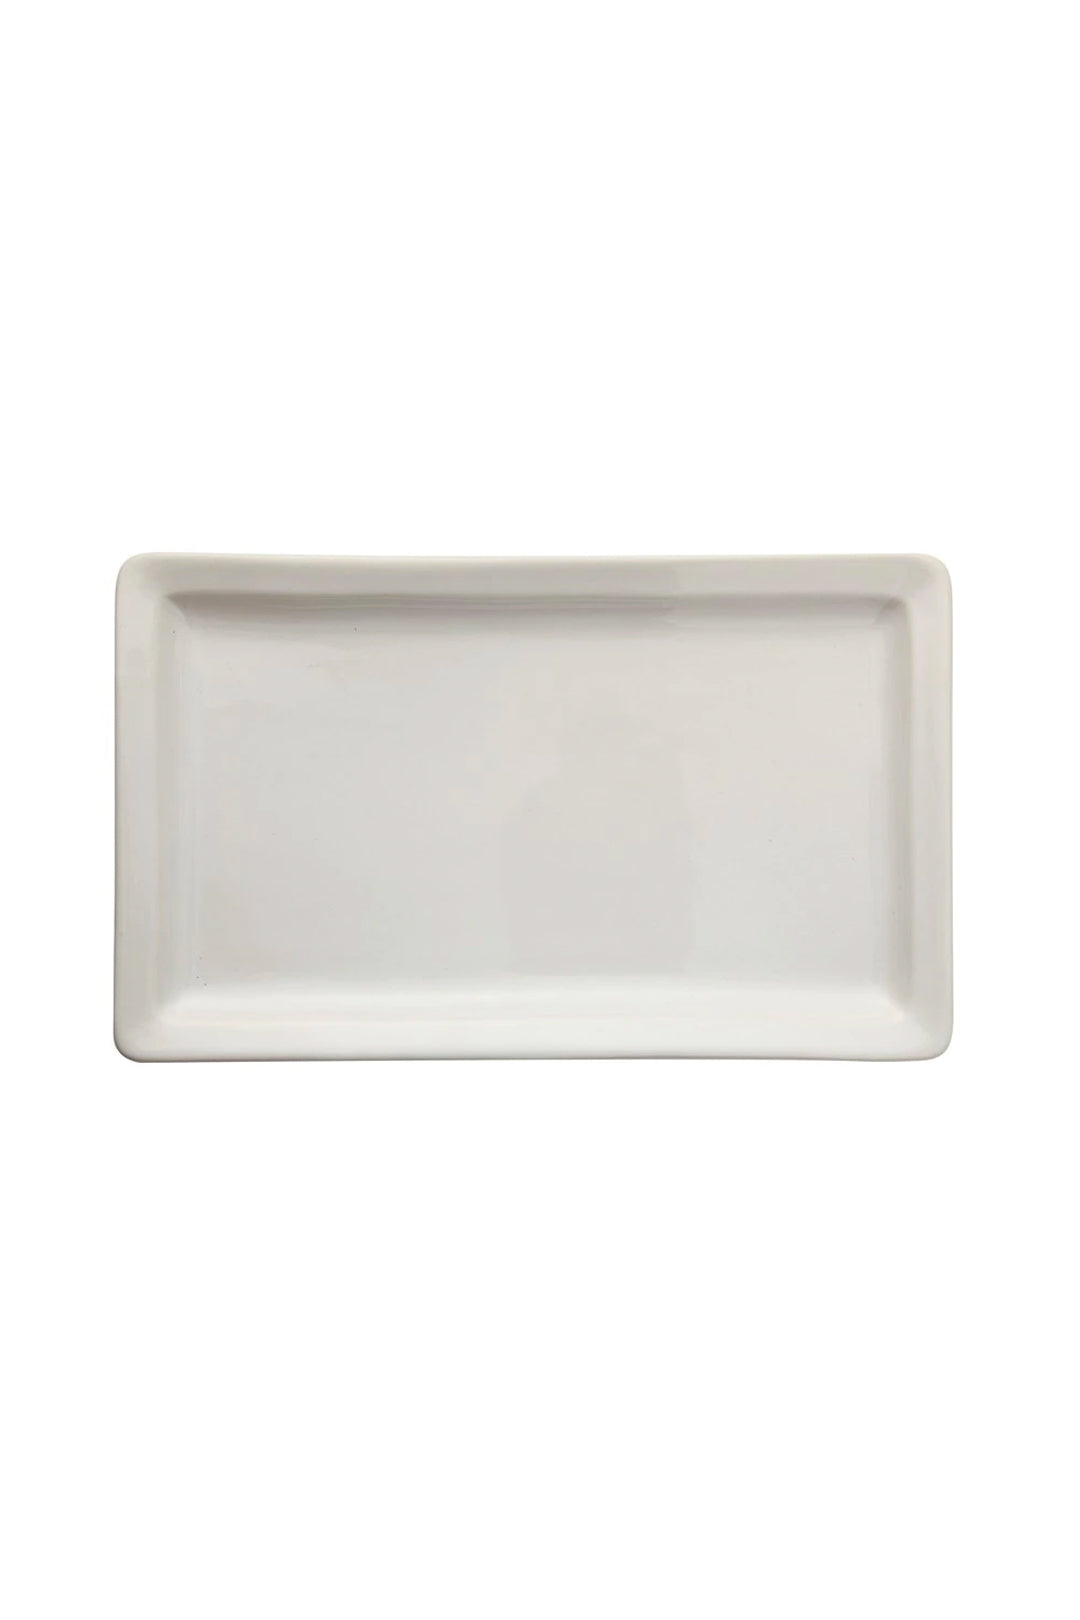 stoneware vintage platter in antique white